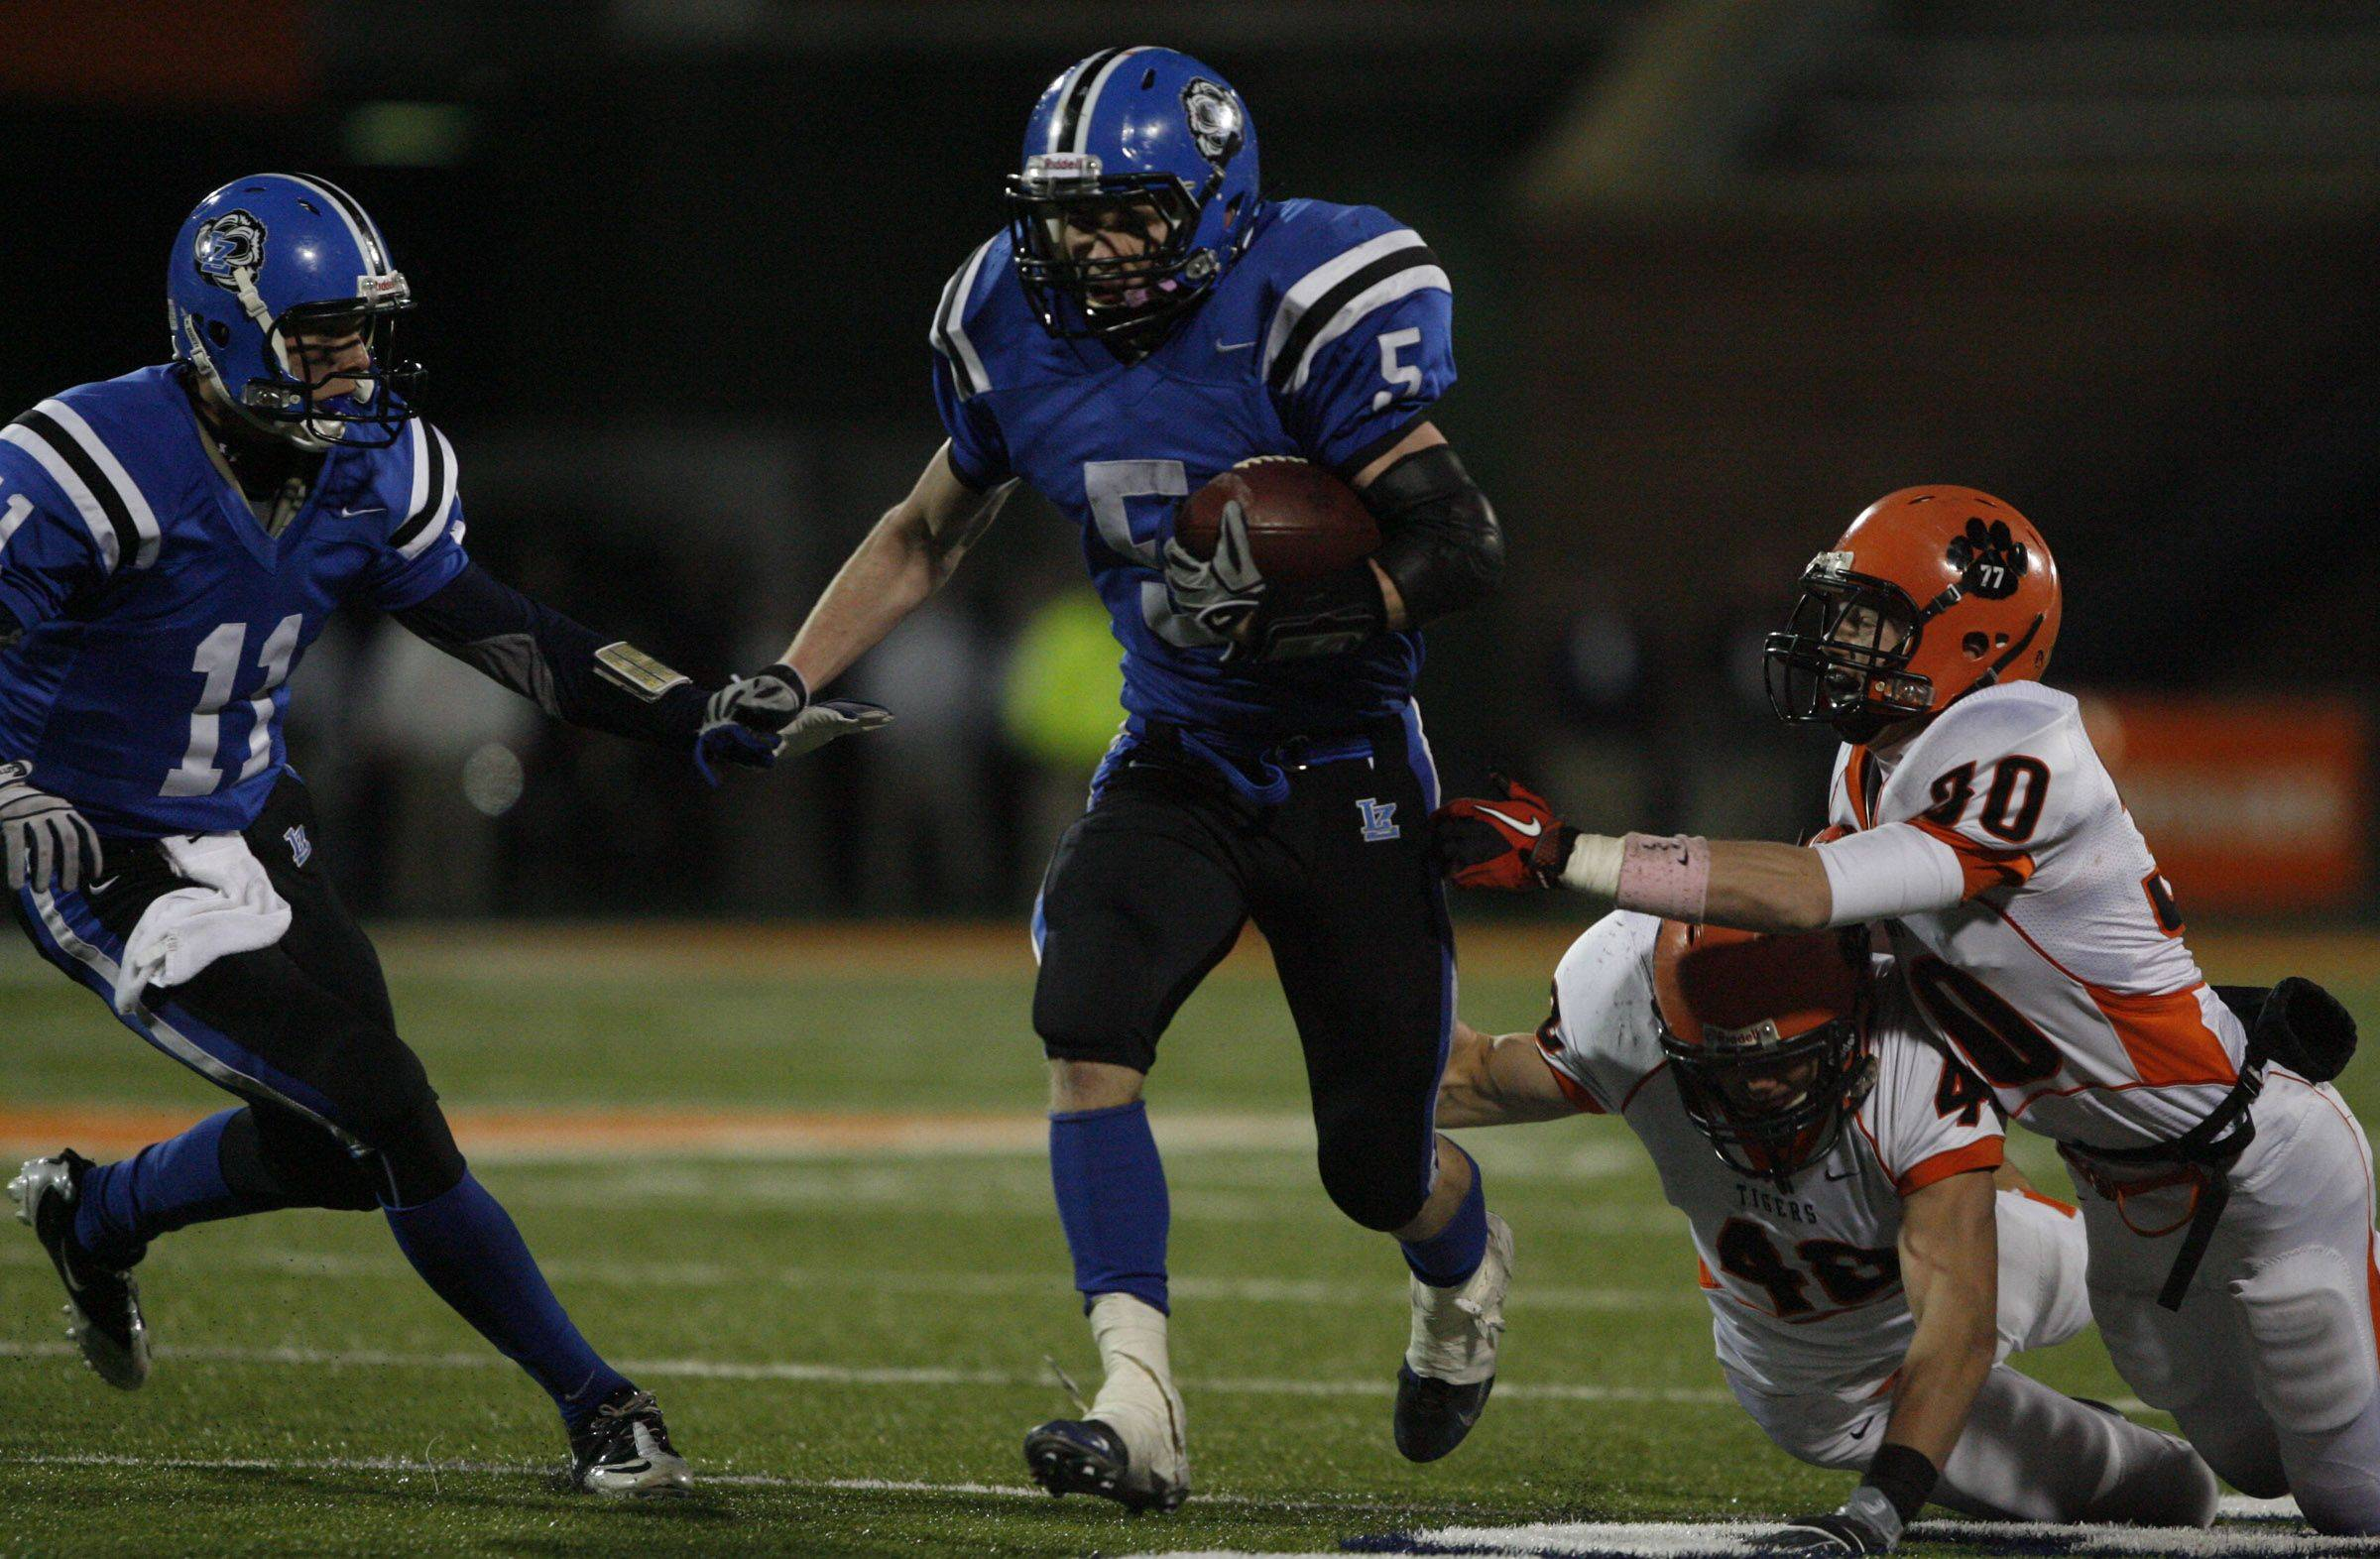 Images from the 7A state title game between Wheaton Warrenville South and Lake Zurich Saturday, November 27, 2010.